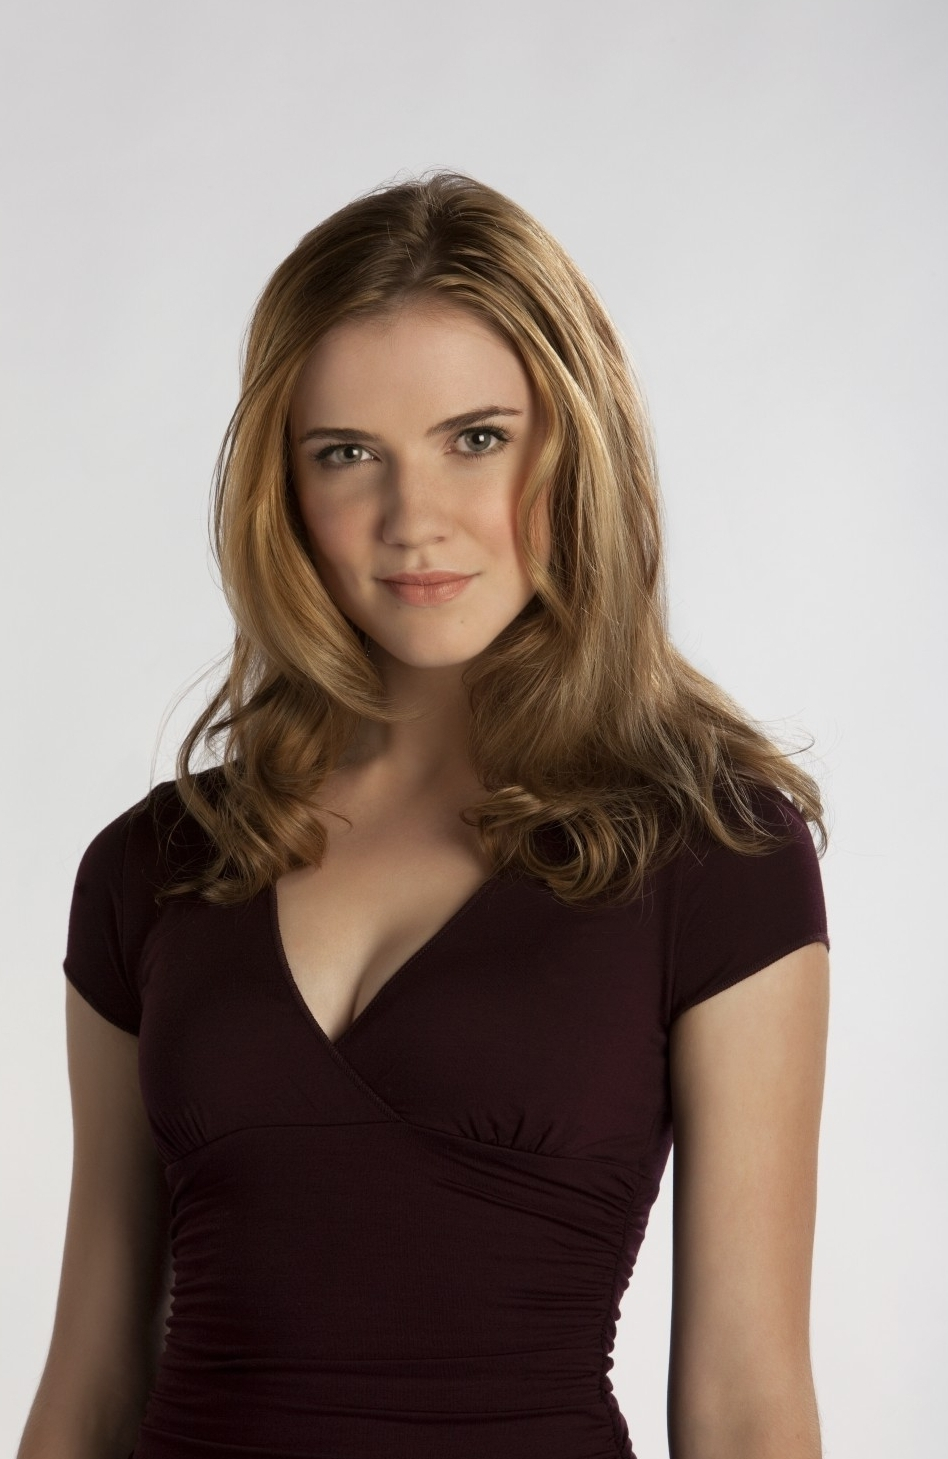 Sara Canning nudes (47 photo), Sexy, Leaked, Boobs, butt 2015